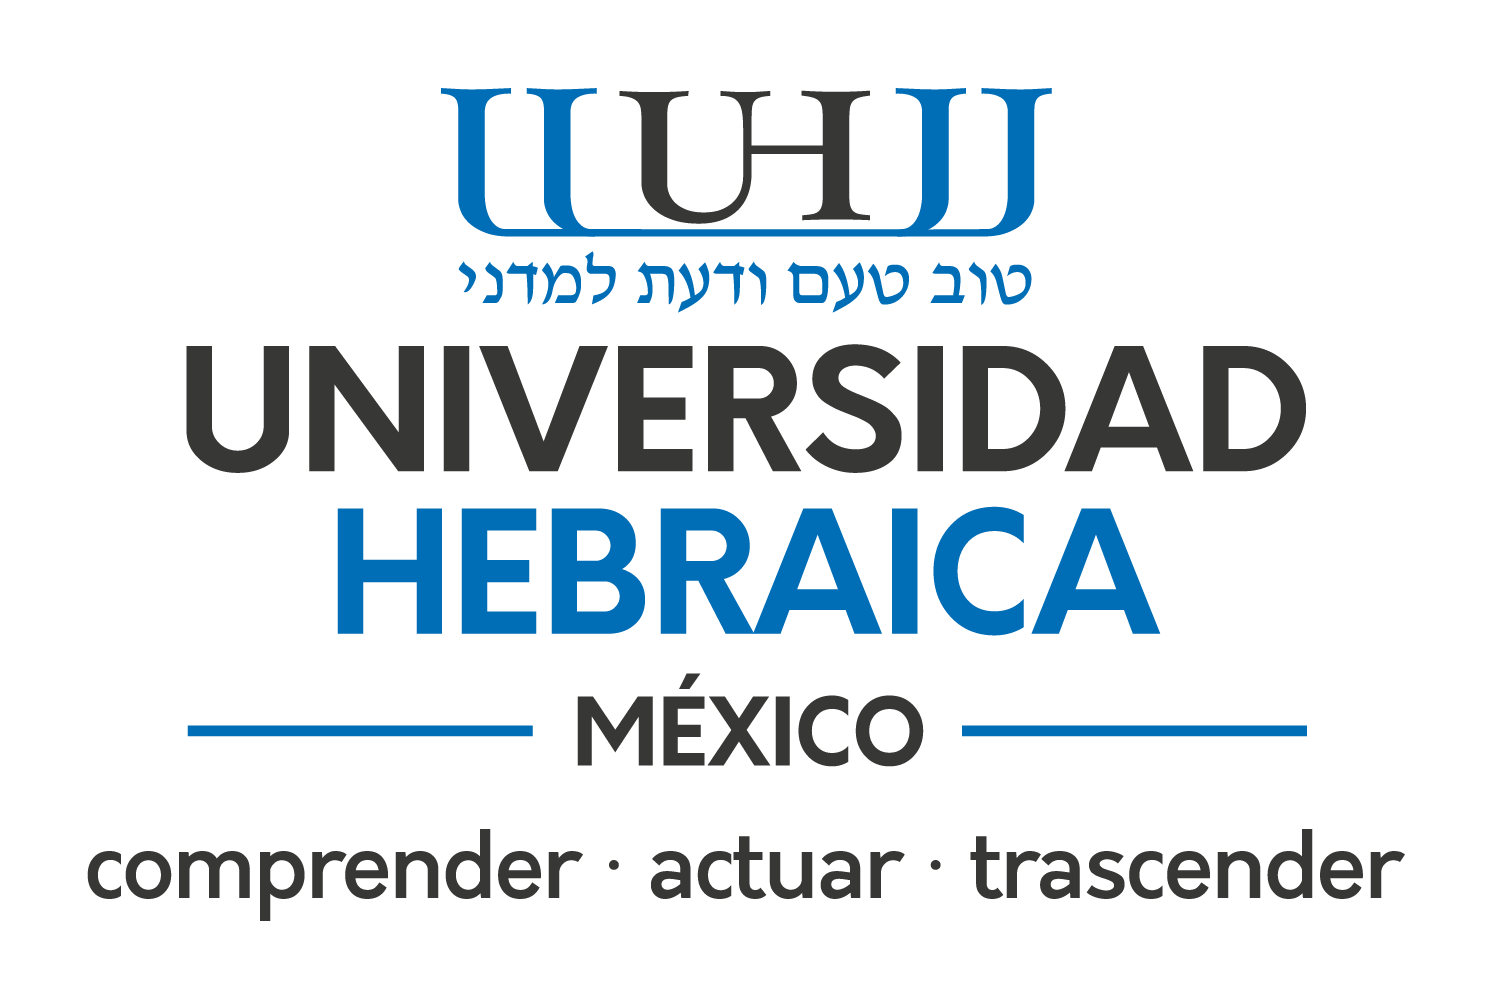 Universidad Hebraíca